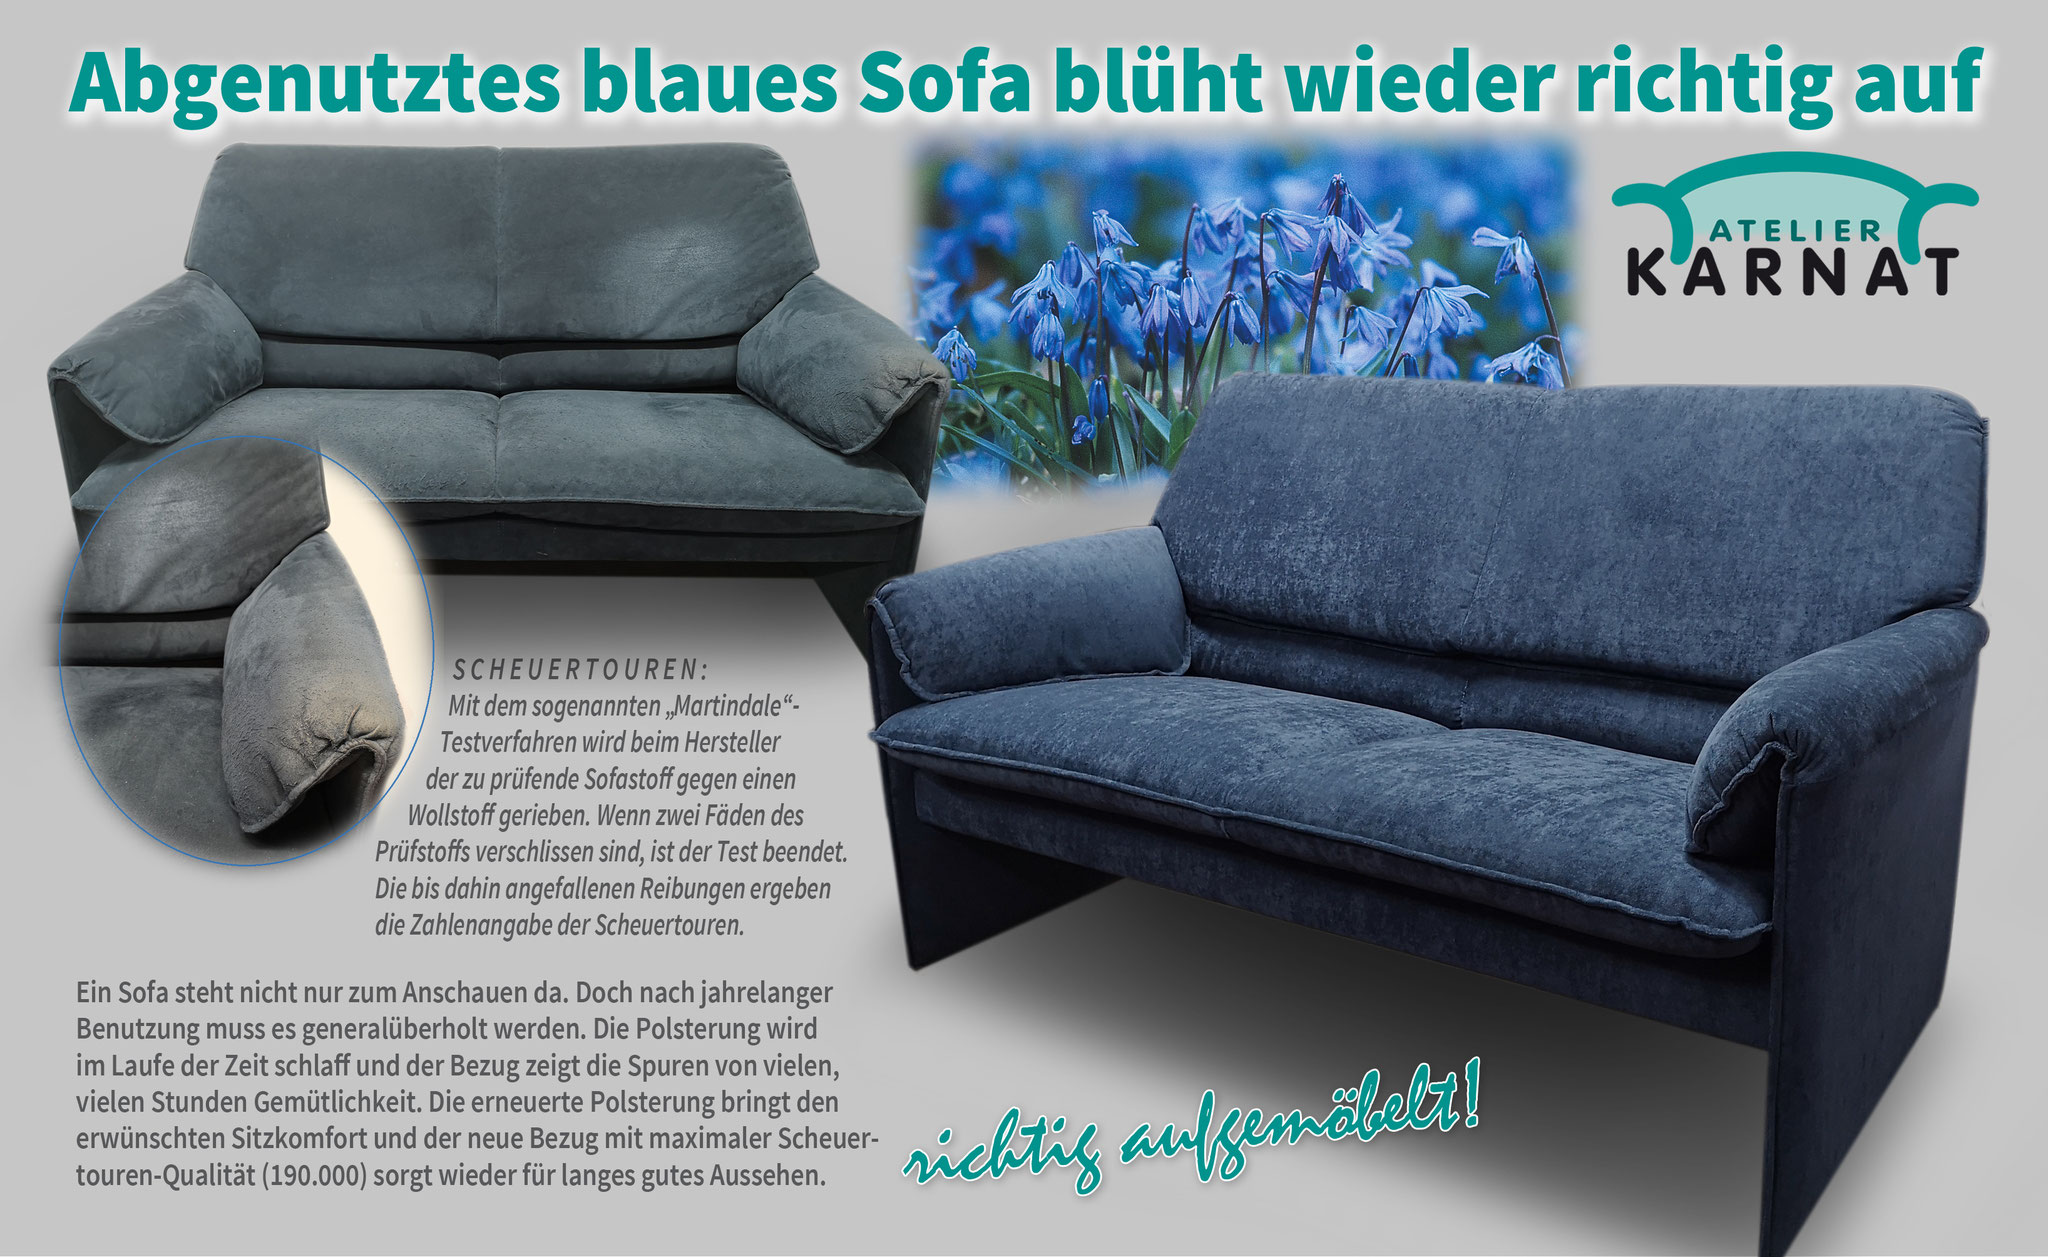 Sensational Sofas Atelier Karnat Polsterei Raumausstattung Ibusinesslaw Wood Chair Design Ideas Ibusinesslaworg